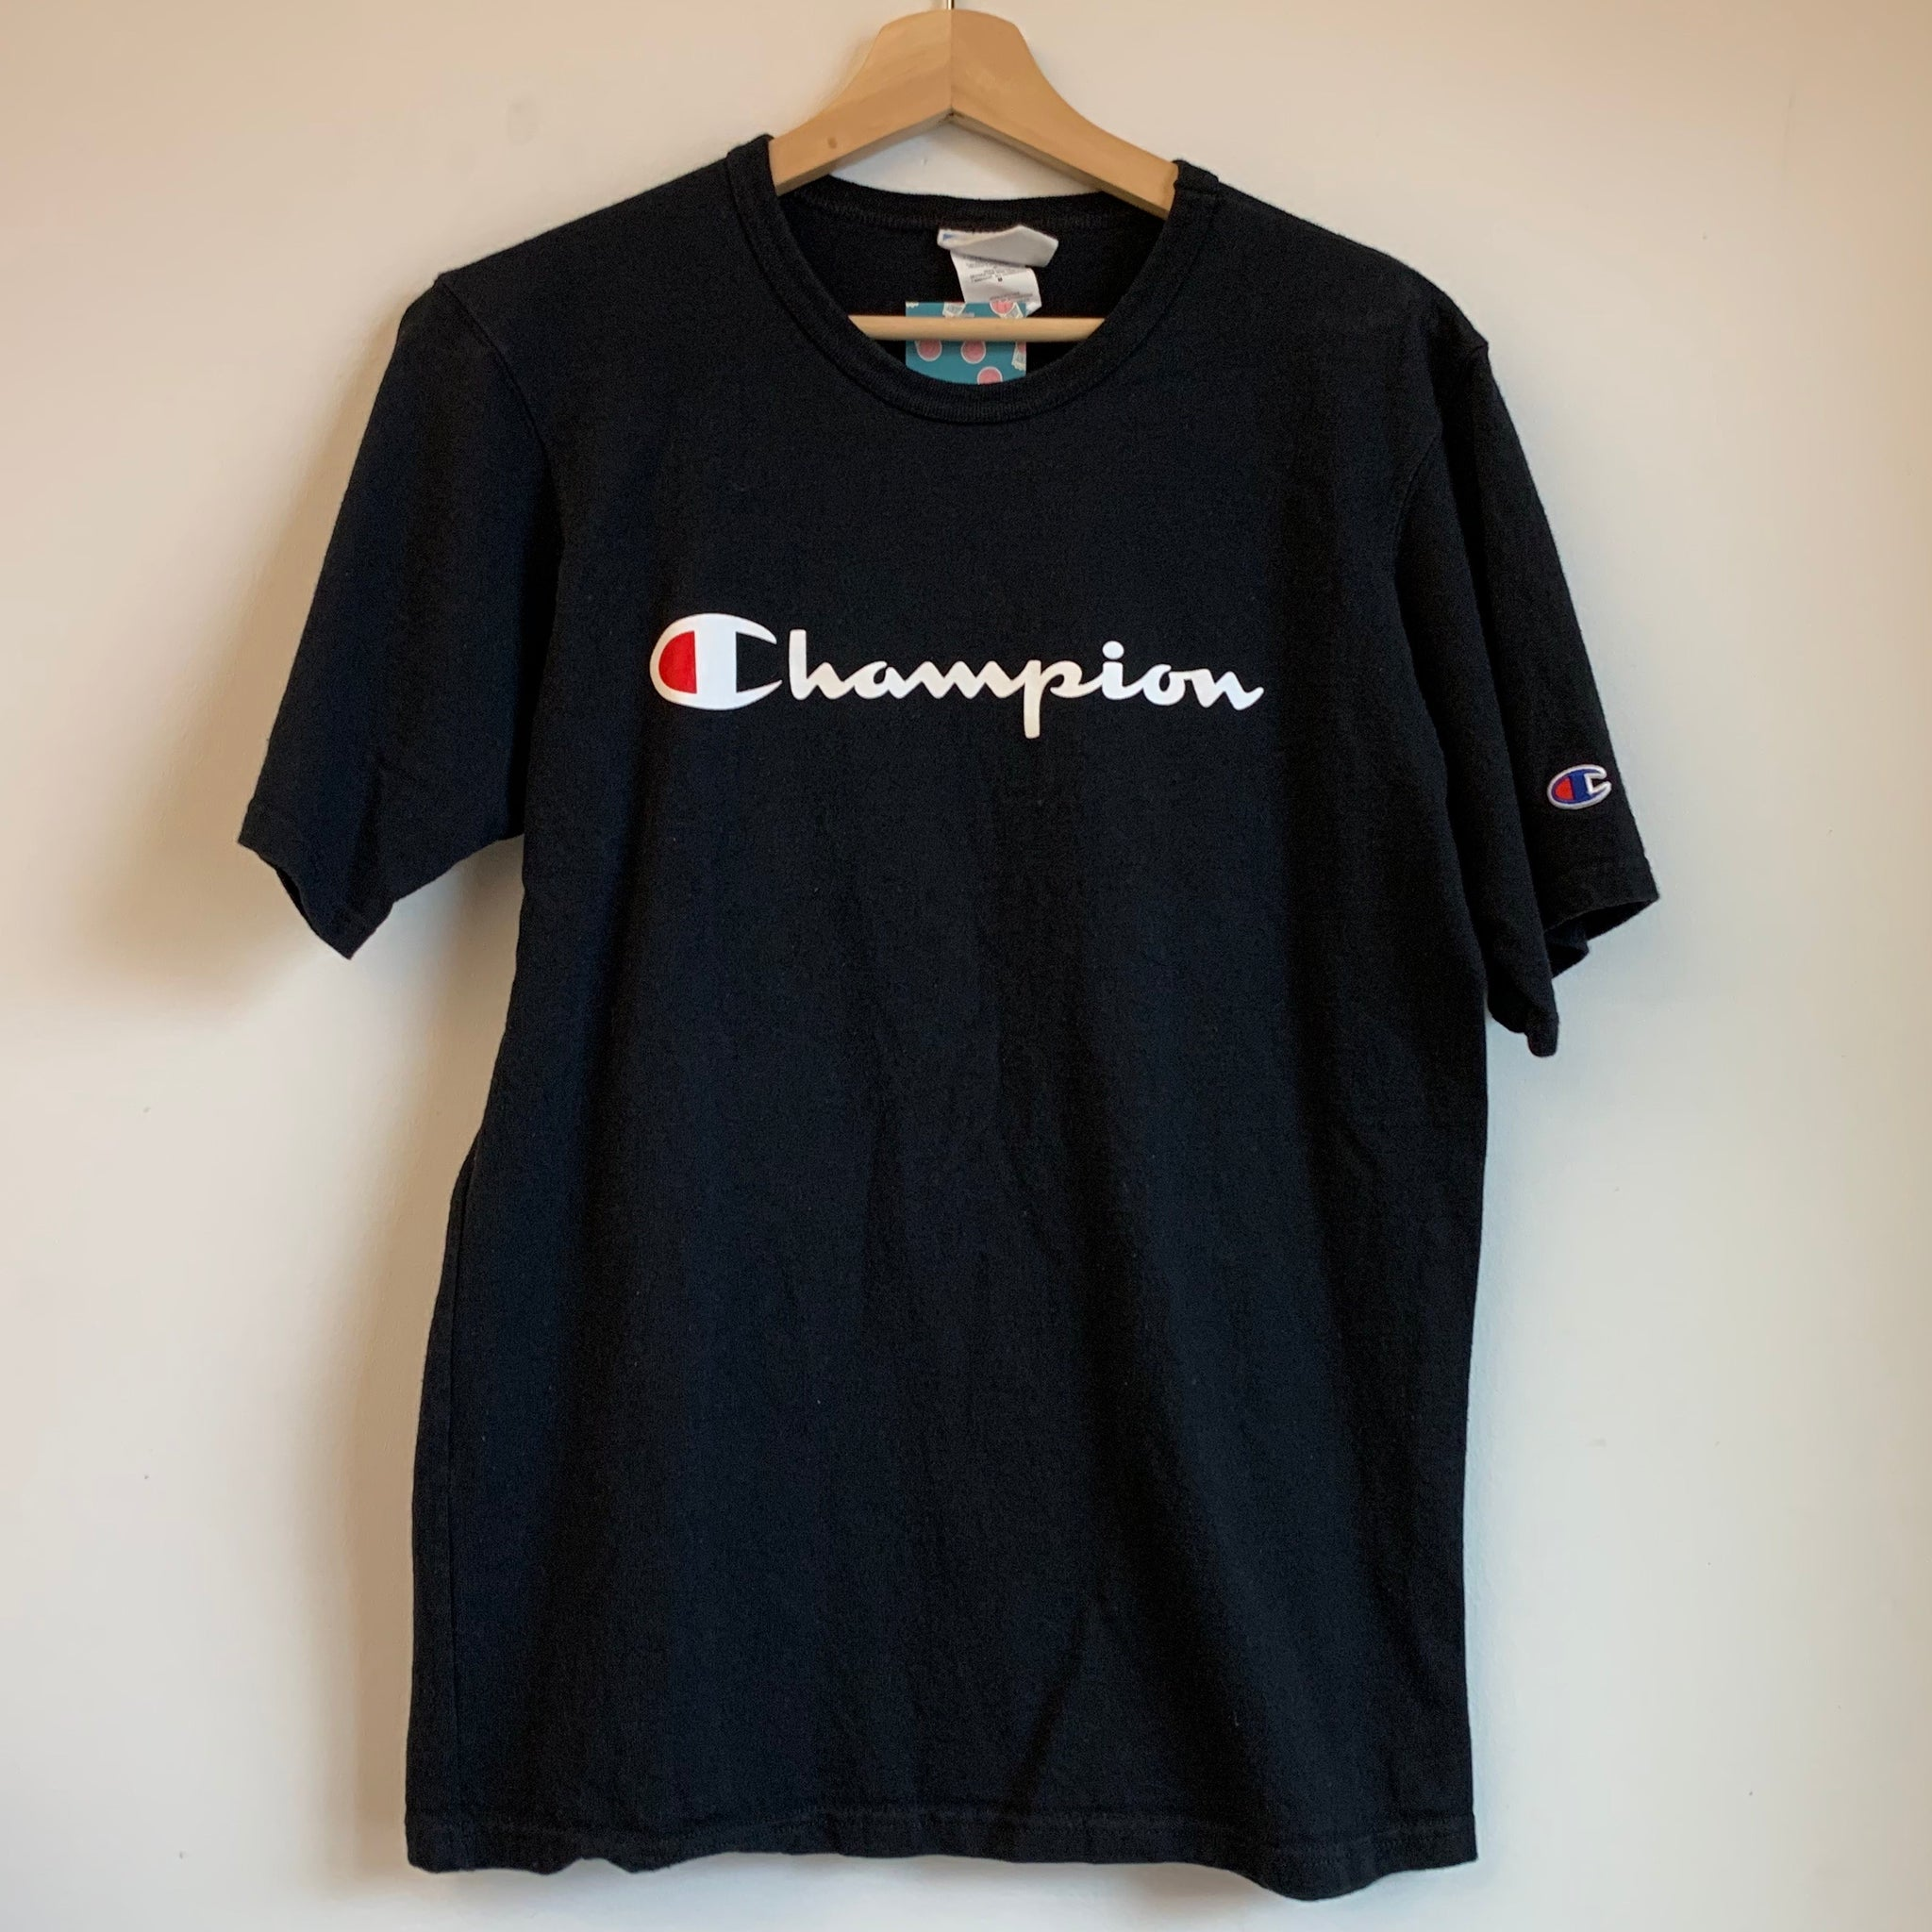 Champion Spellout Black/White Tee Shirt